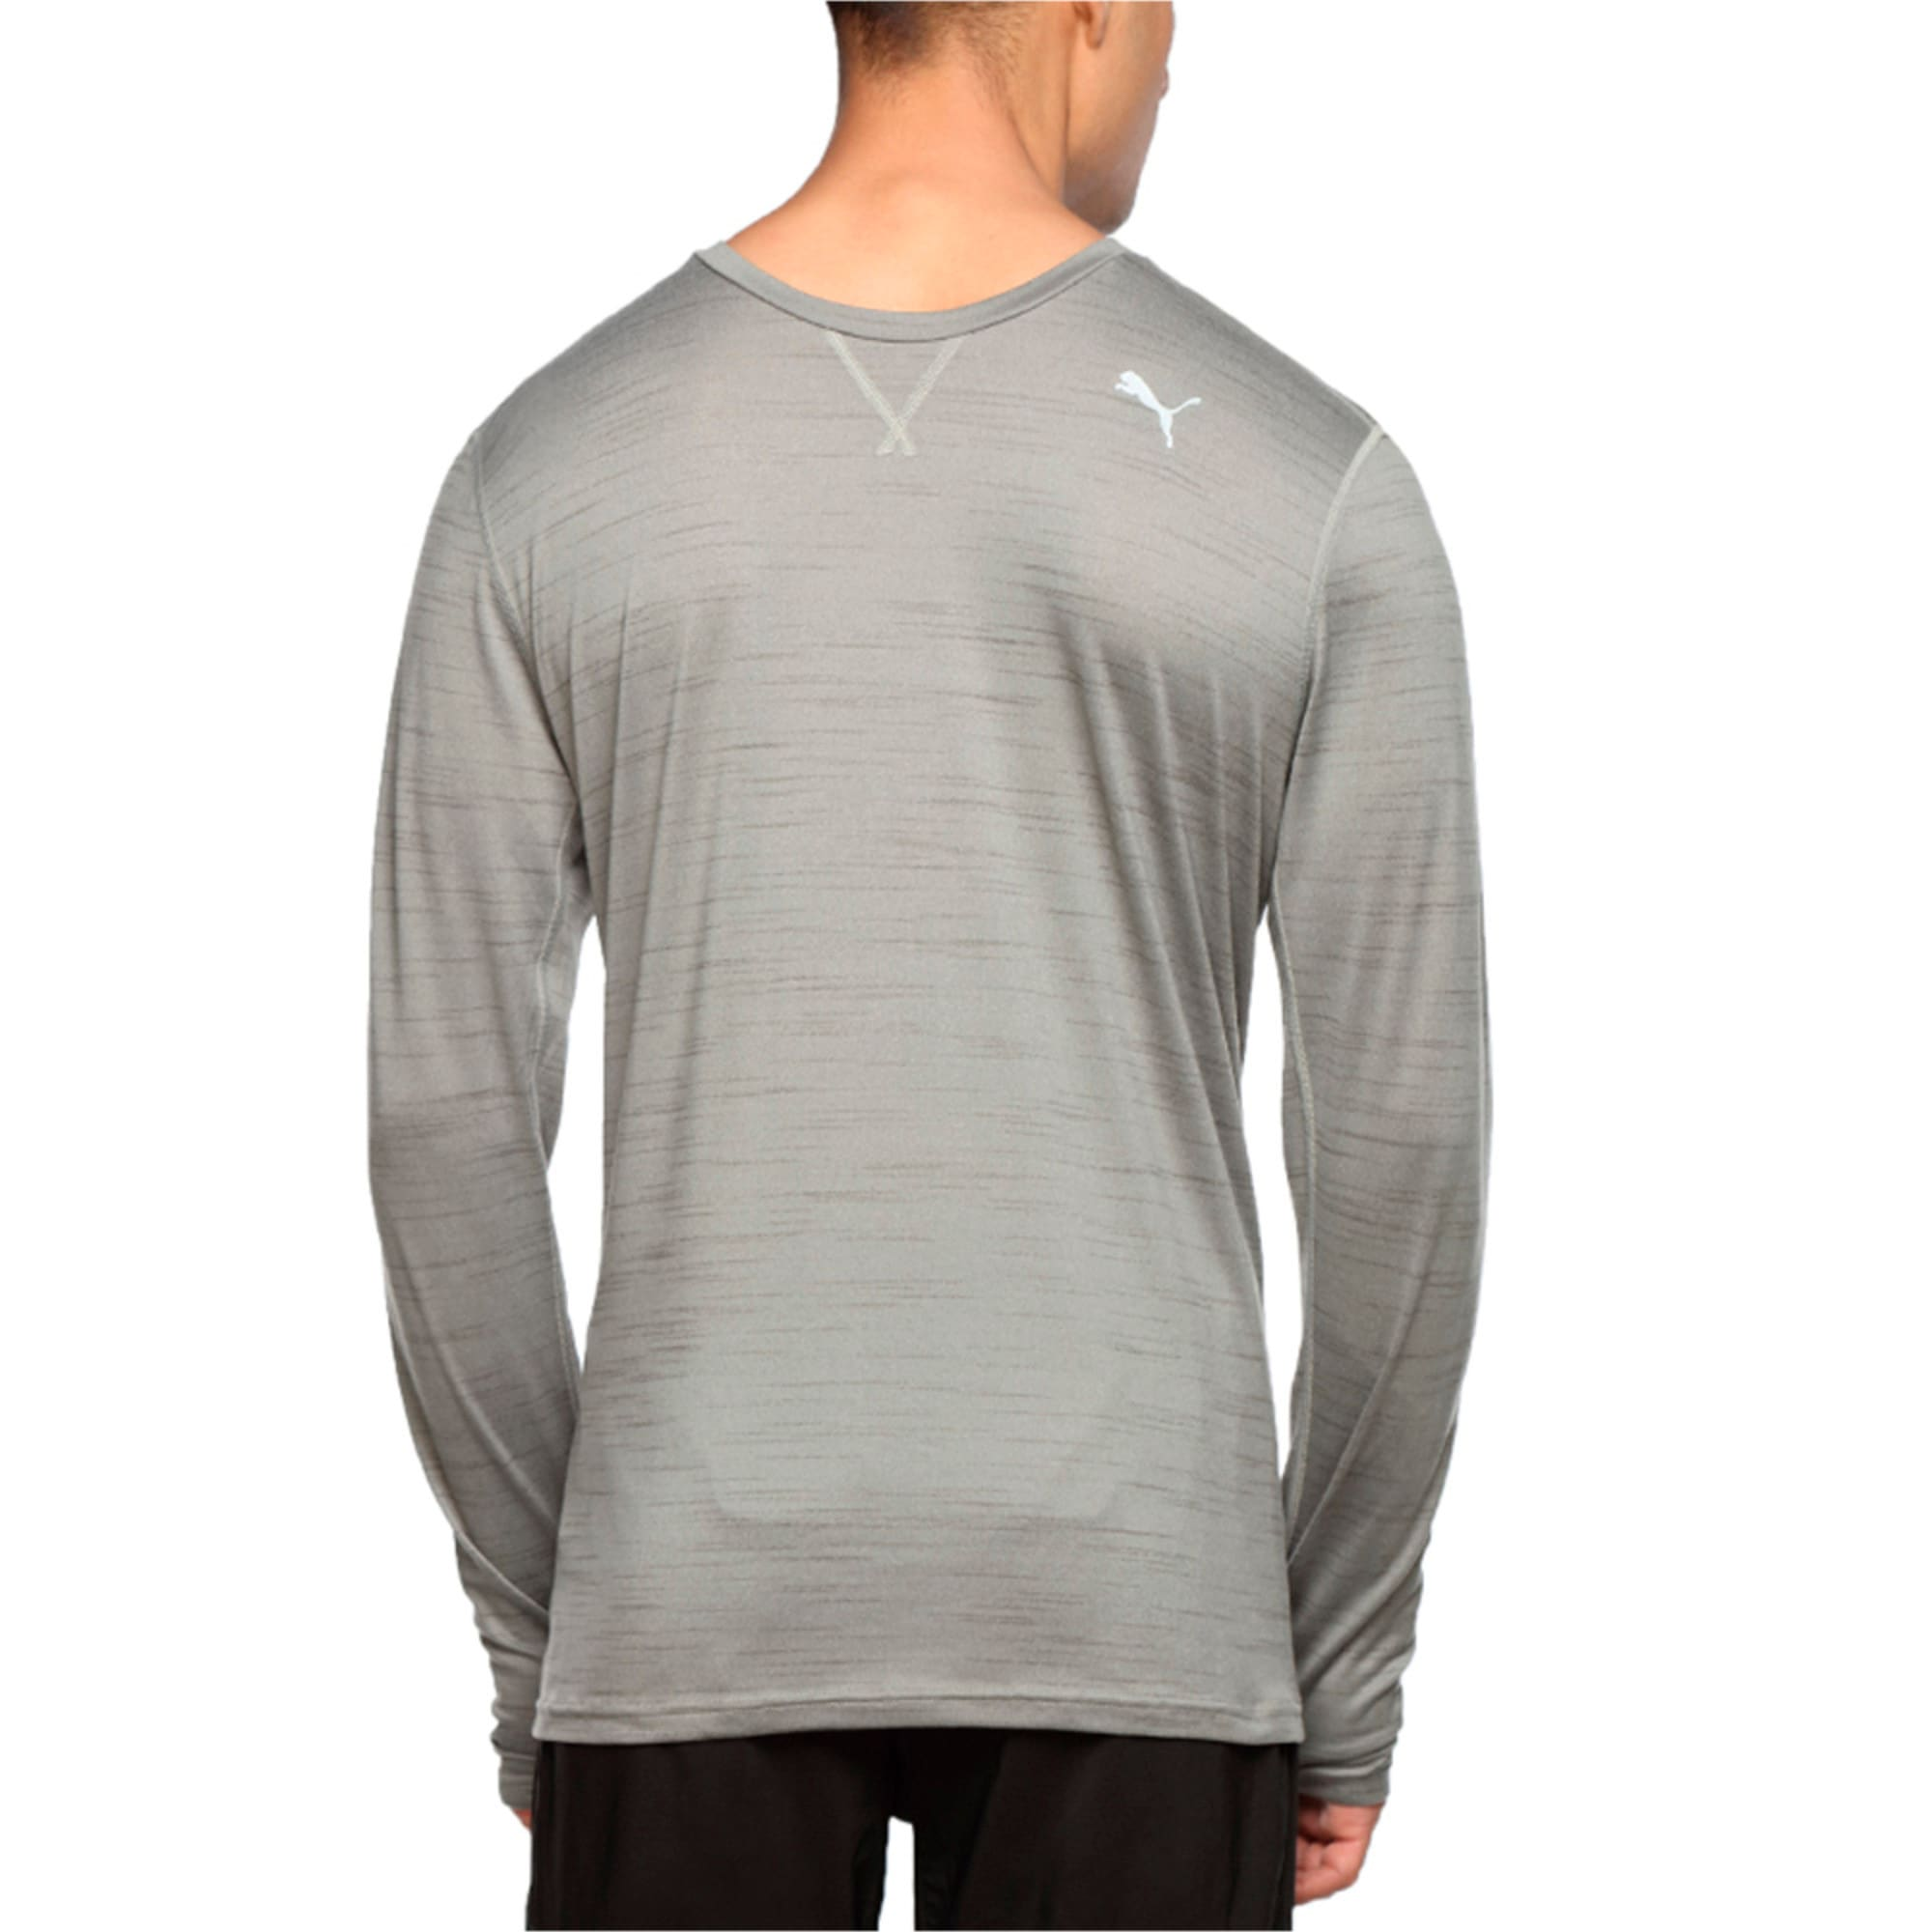 Thumbnail 2 of Rebel-Run L S Tee, Medium Gray Heather, medium-IND